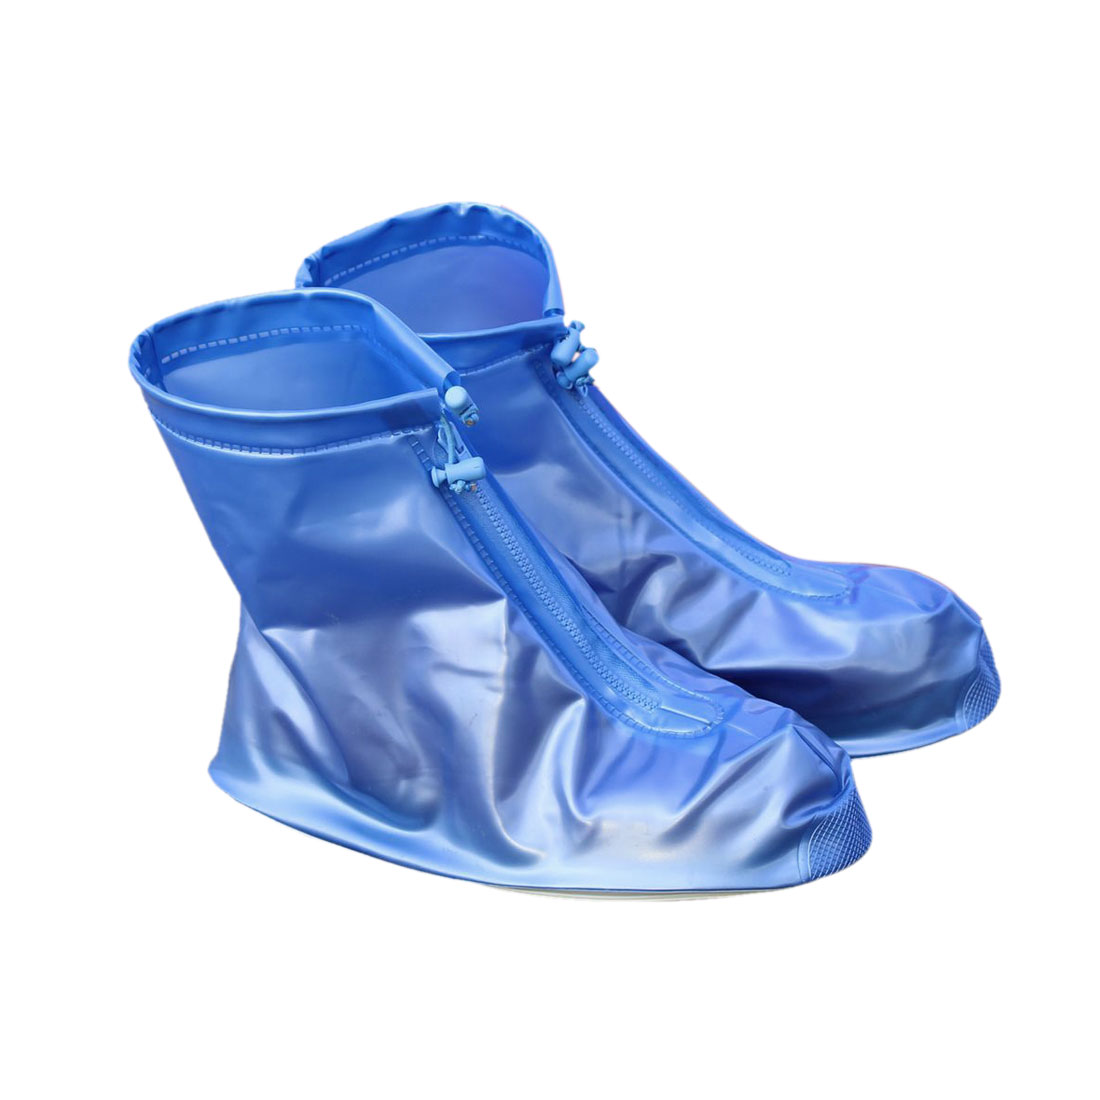 1 Pair Blue Size XL Unisex PVC Nonslip Reusable Waterproof Rain Shoes Cover Guard Overshoes Protection